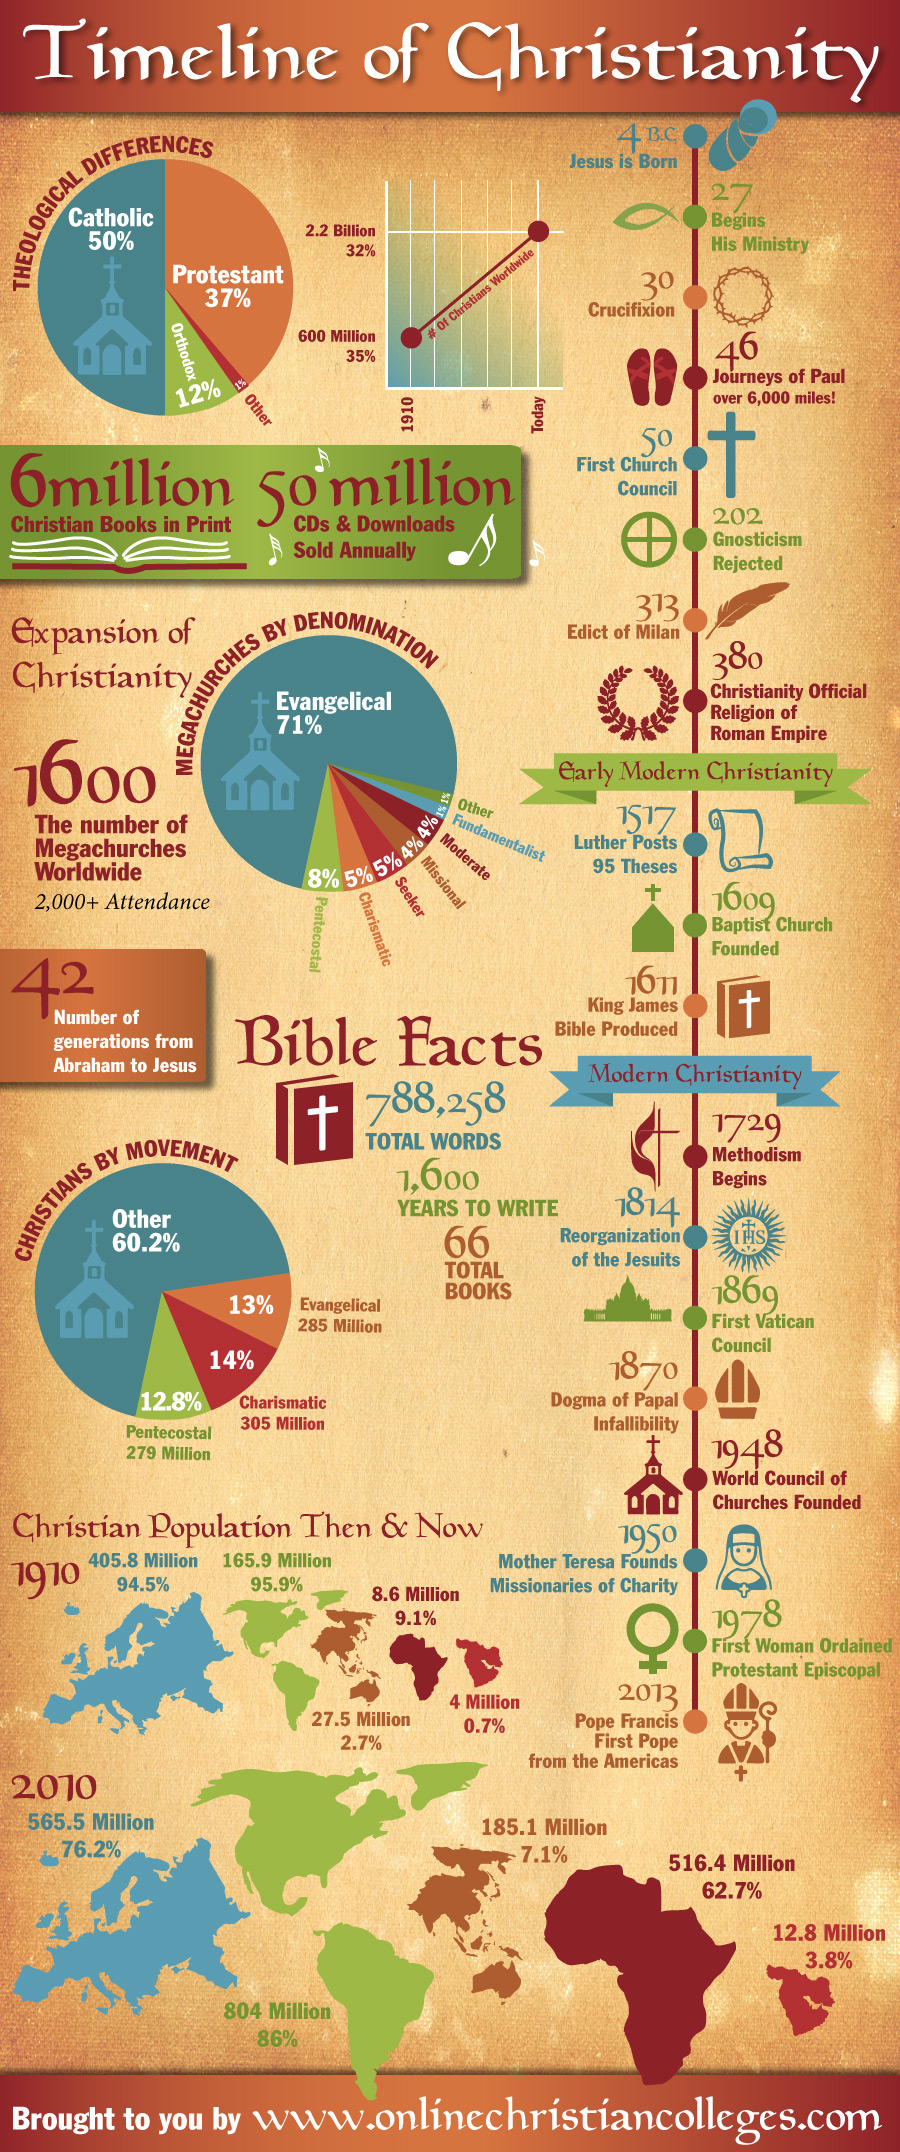 Historic Timeline of Christianity